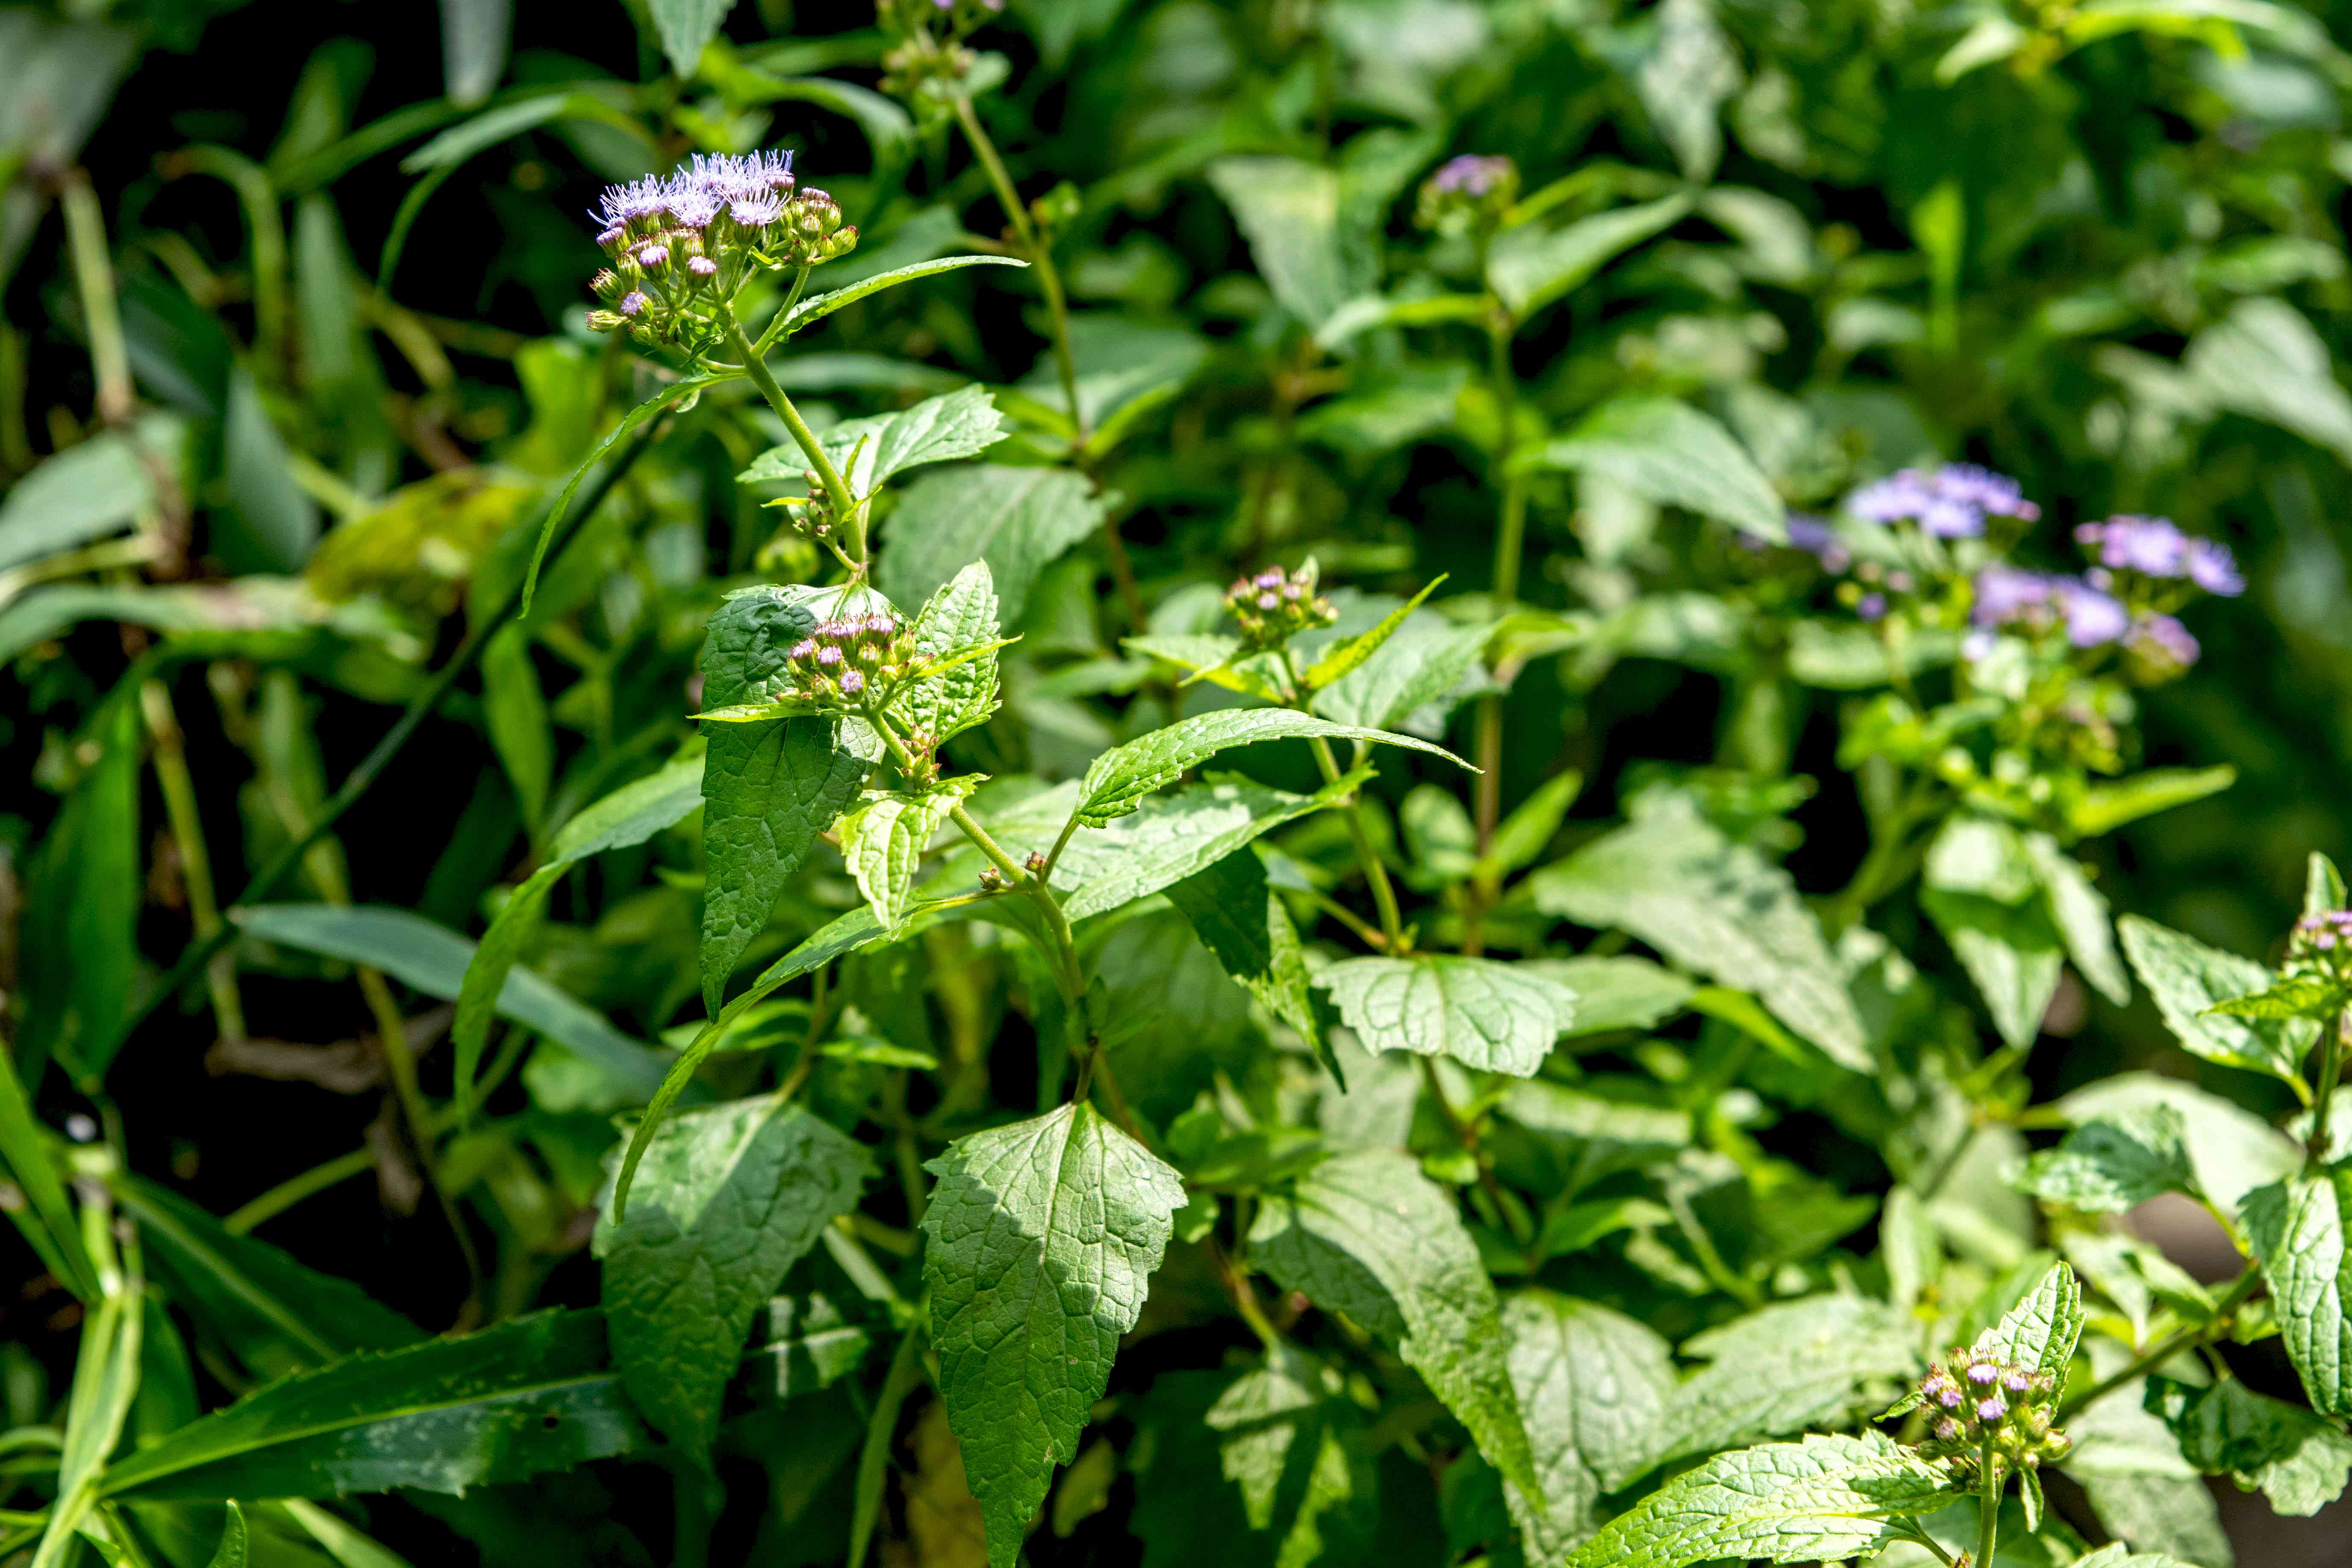 Blue mistflower with triangluar leaves and thin stems with tiny fuzzy flower clusters in sunlight